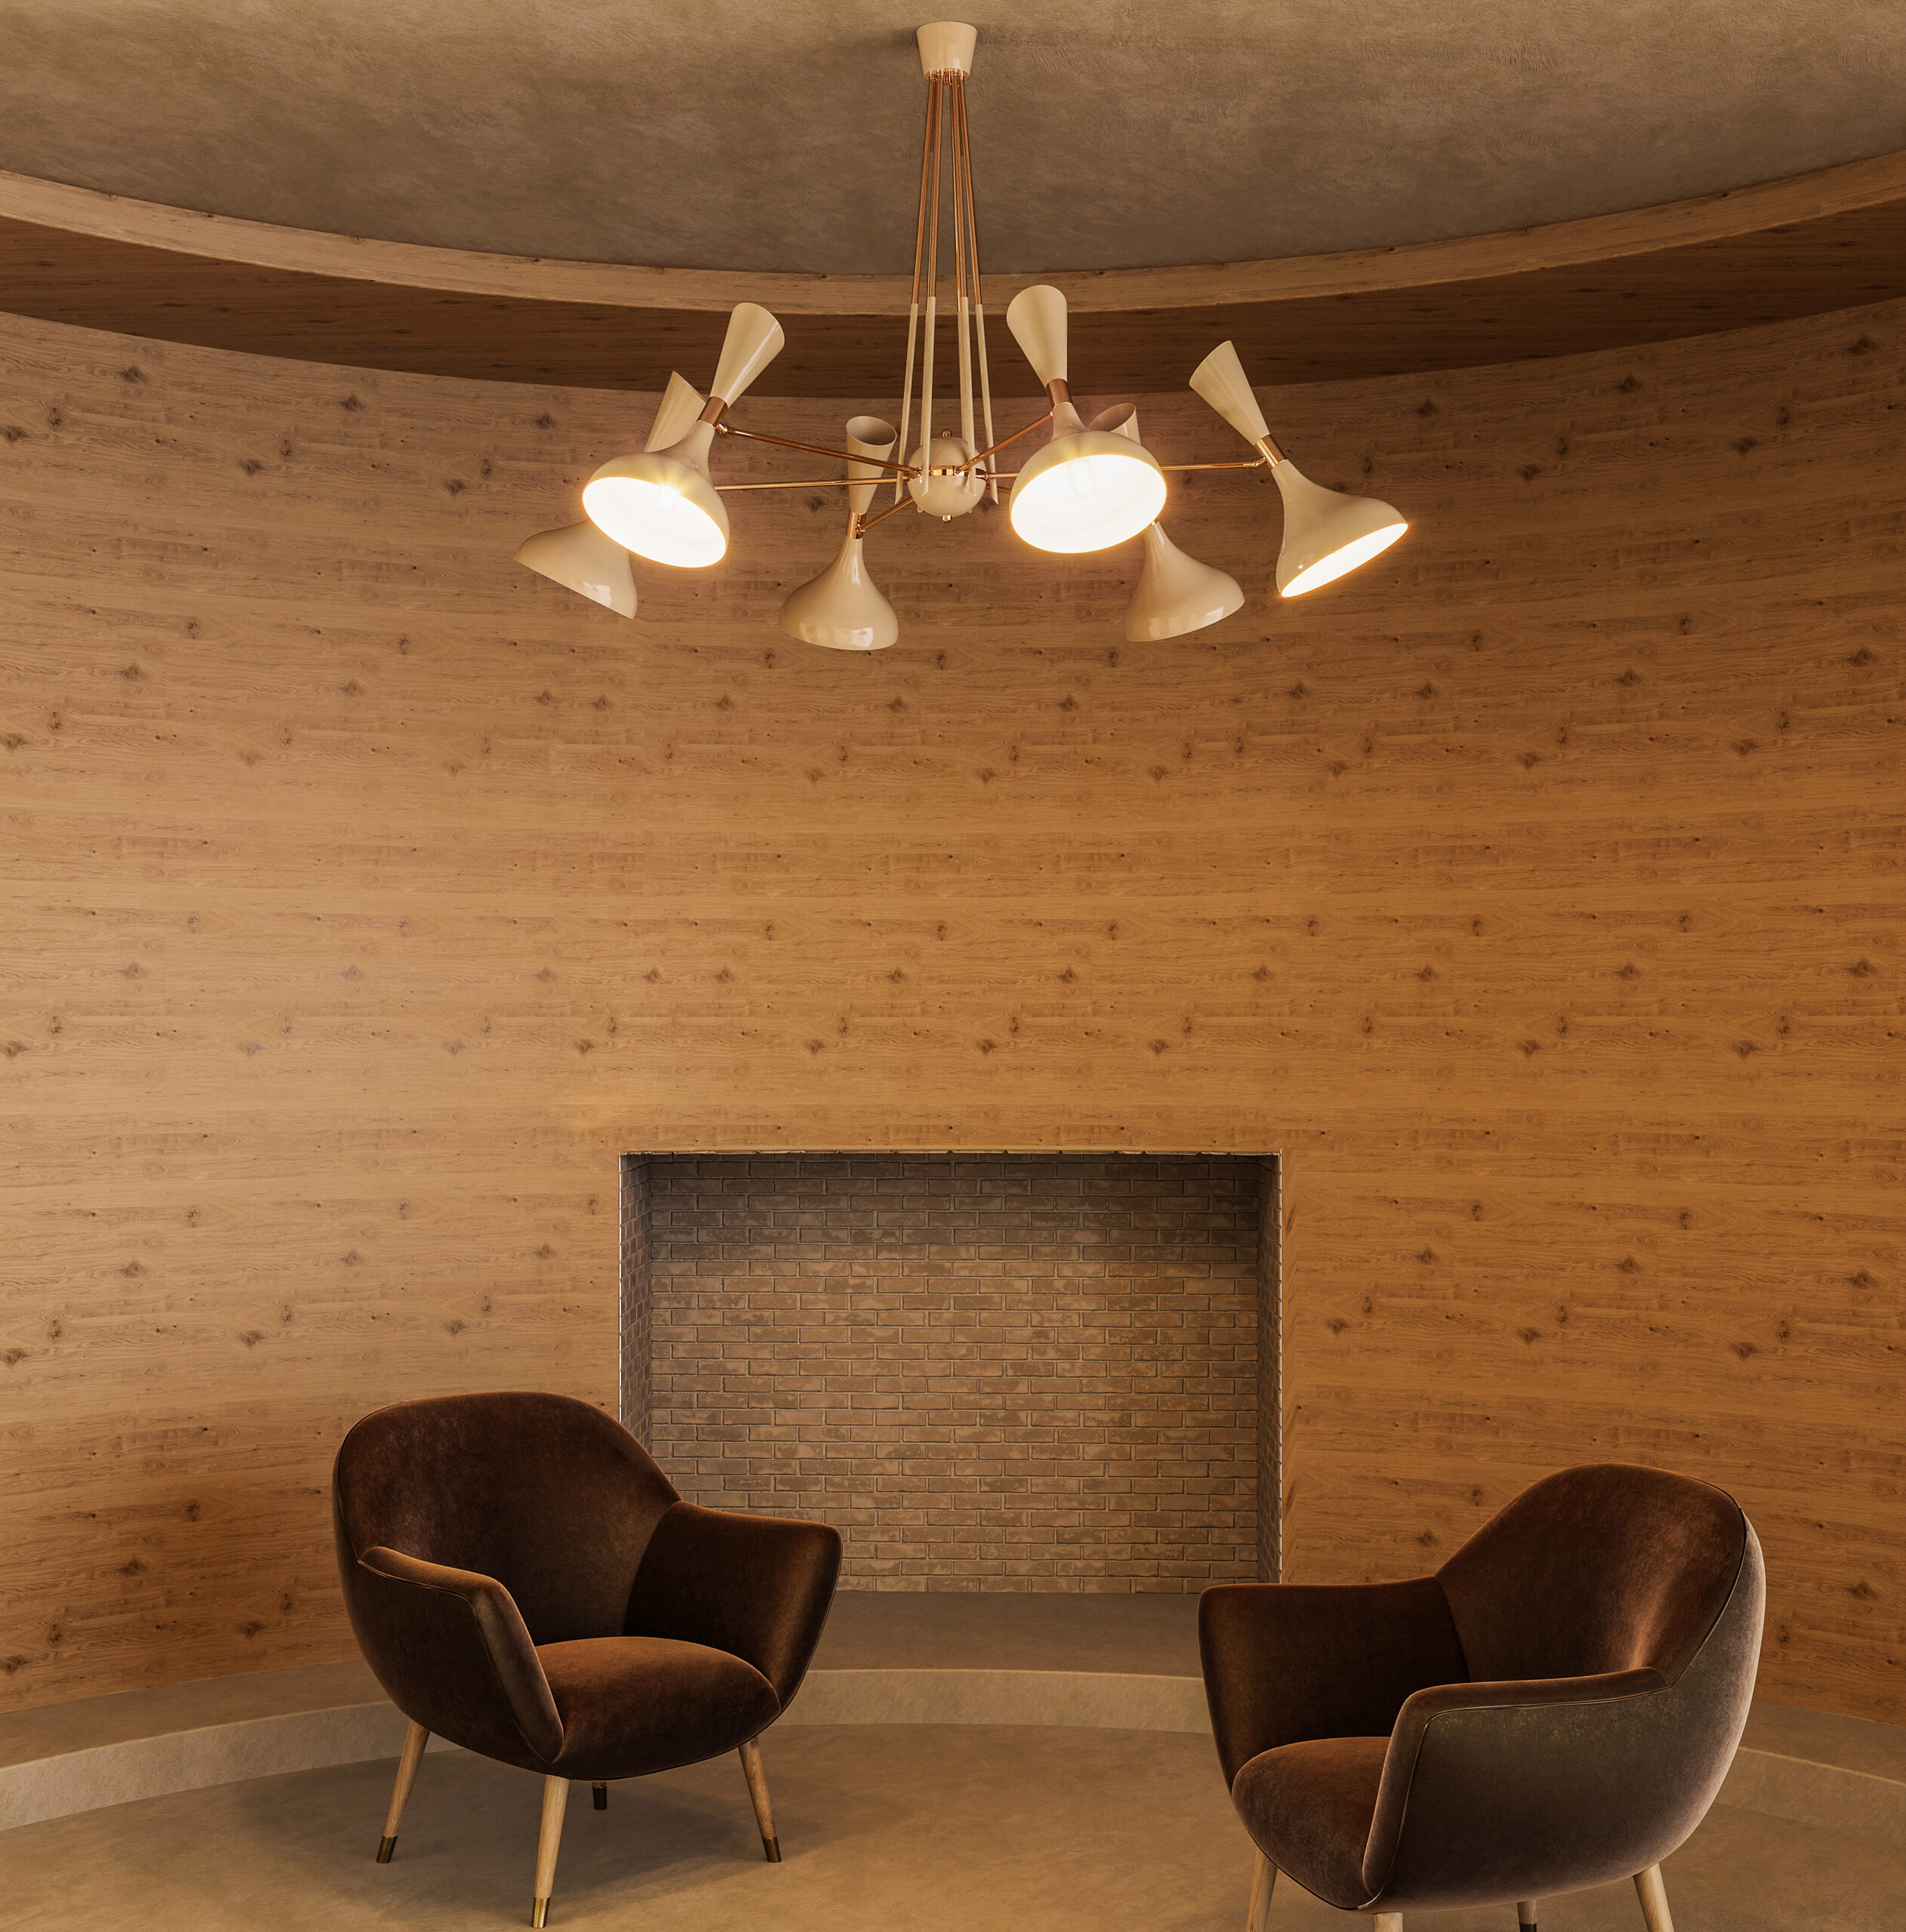 Hanging lamps - helsinki suspension lamp in a wooden interior with velvet armchairws